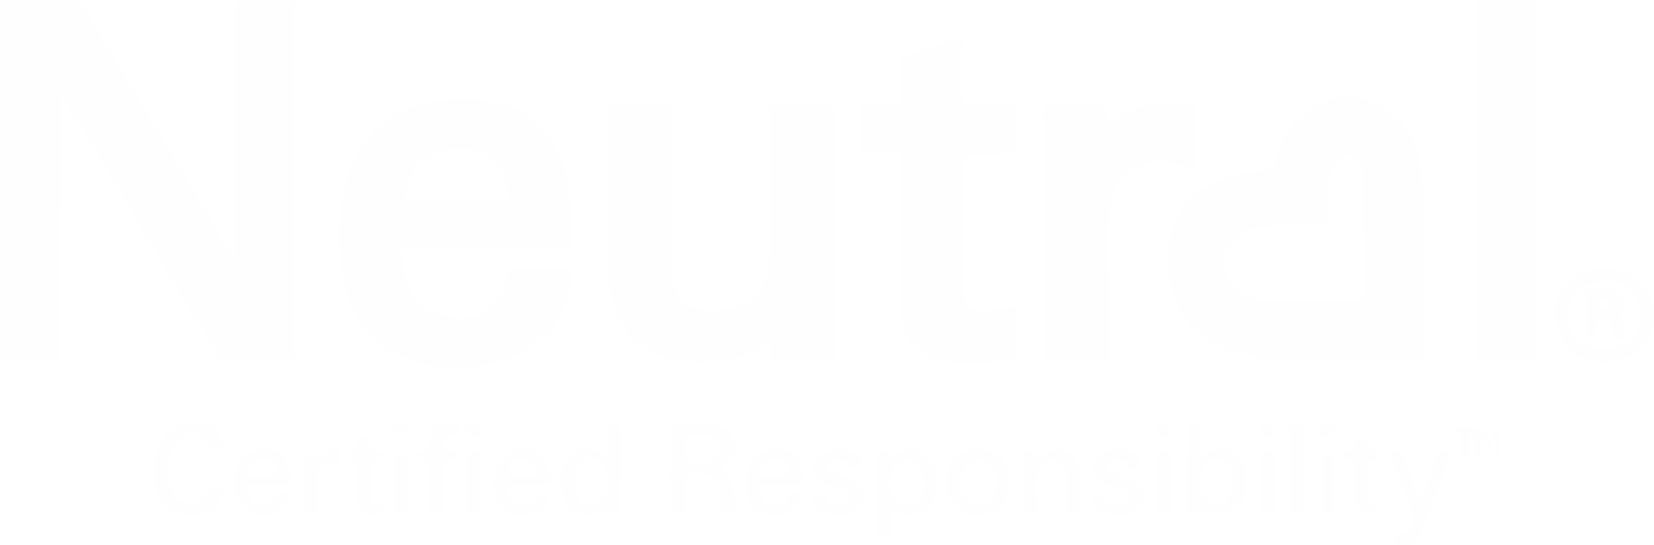 neutral logo.png